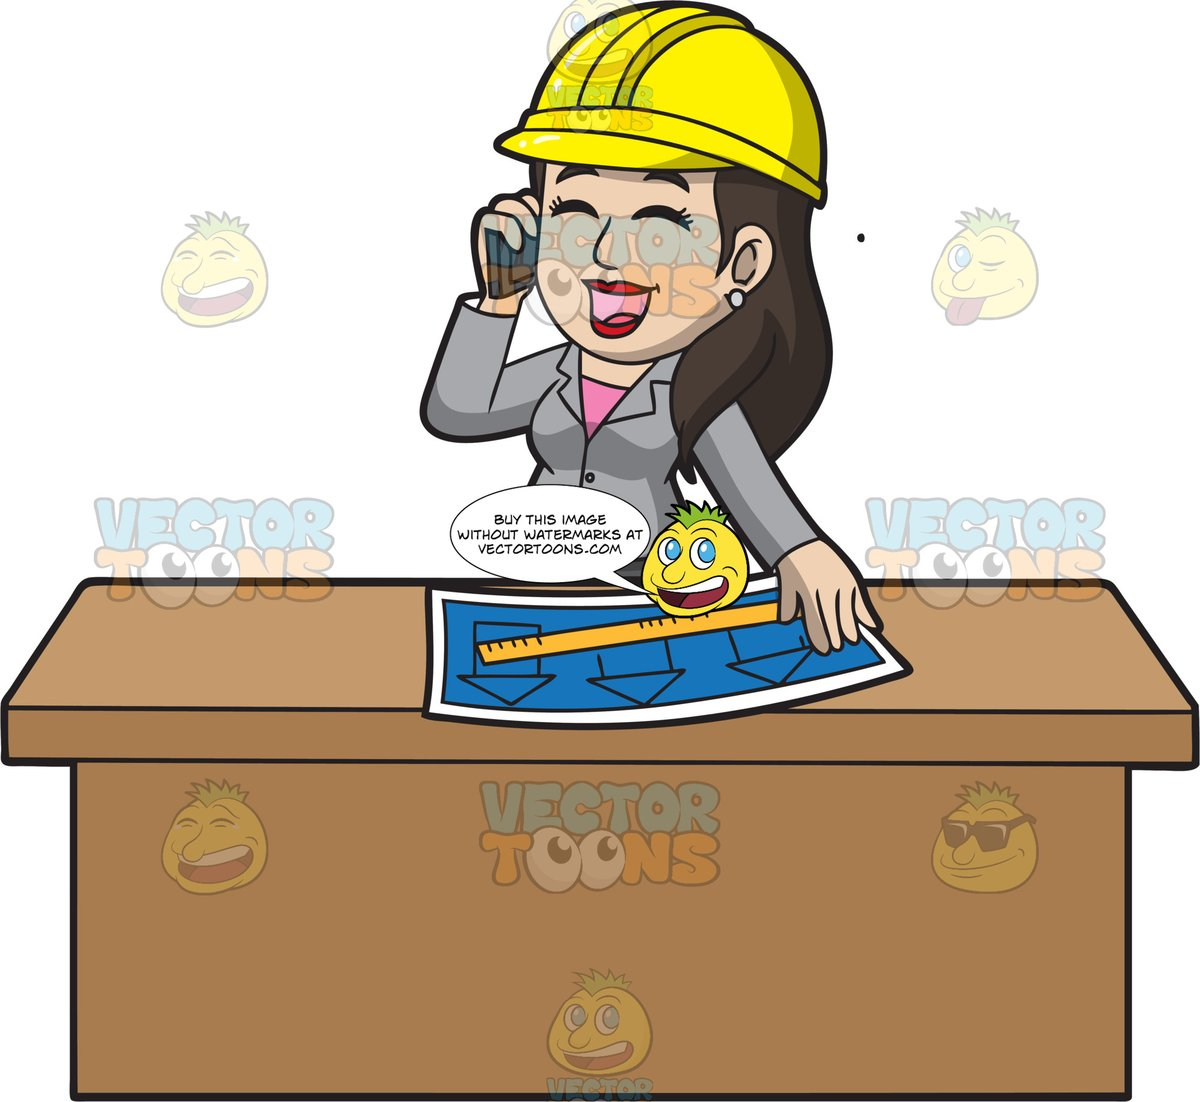 Female architect clipart graphic royalty free download A Female Architect Talking To Her Client On The Phone graphic royalty free download